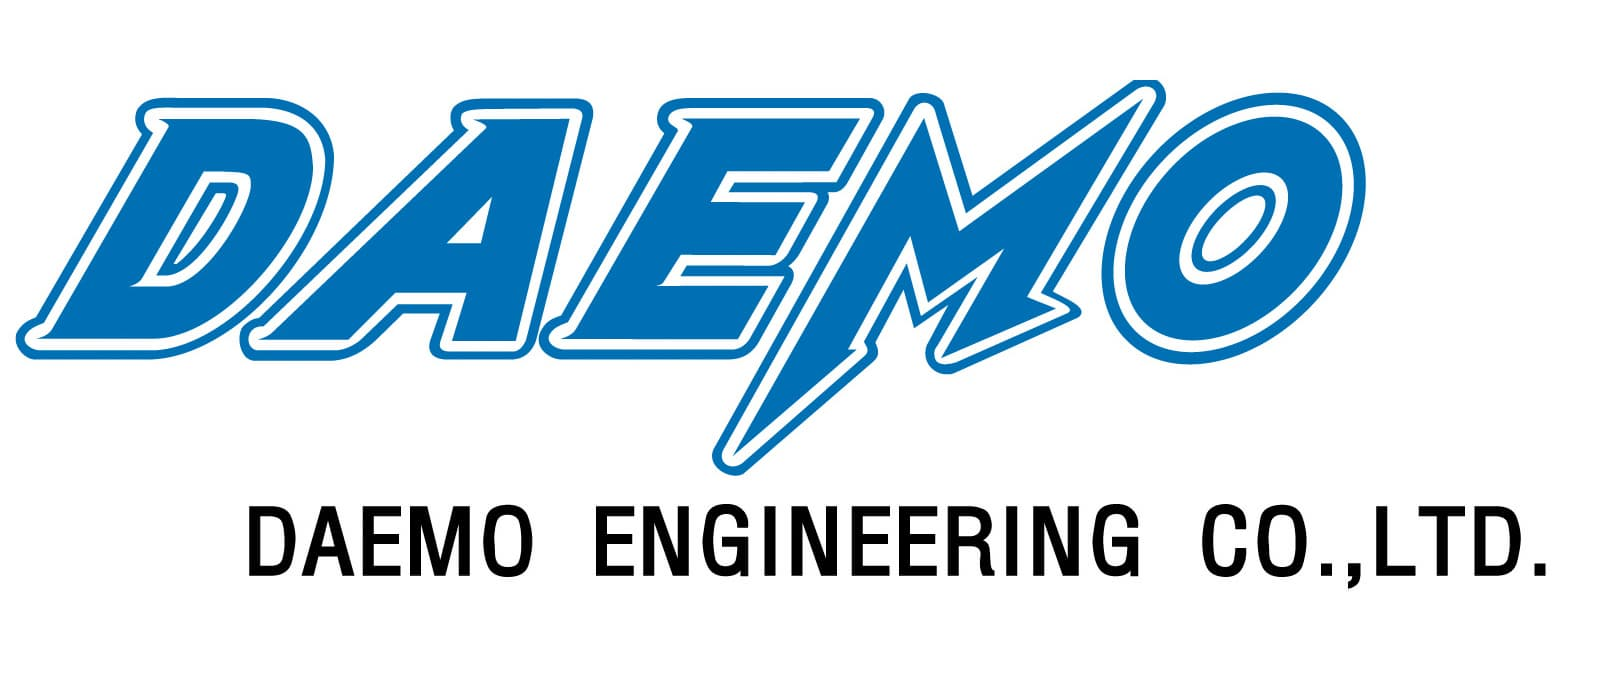 DAEMO ENGINEERING CO., LTD.